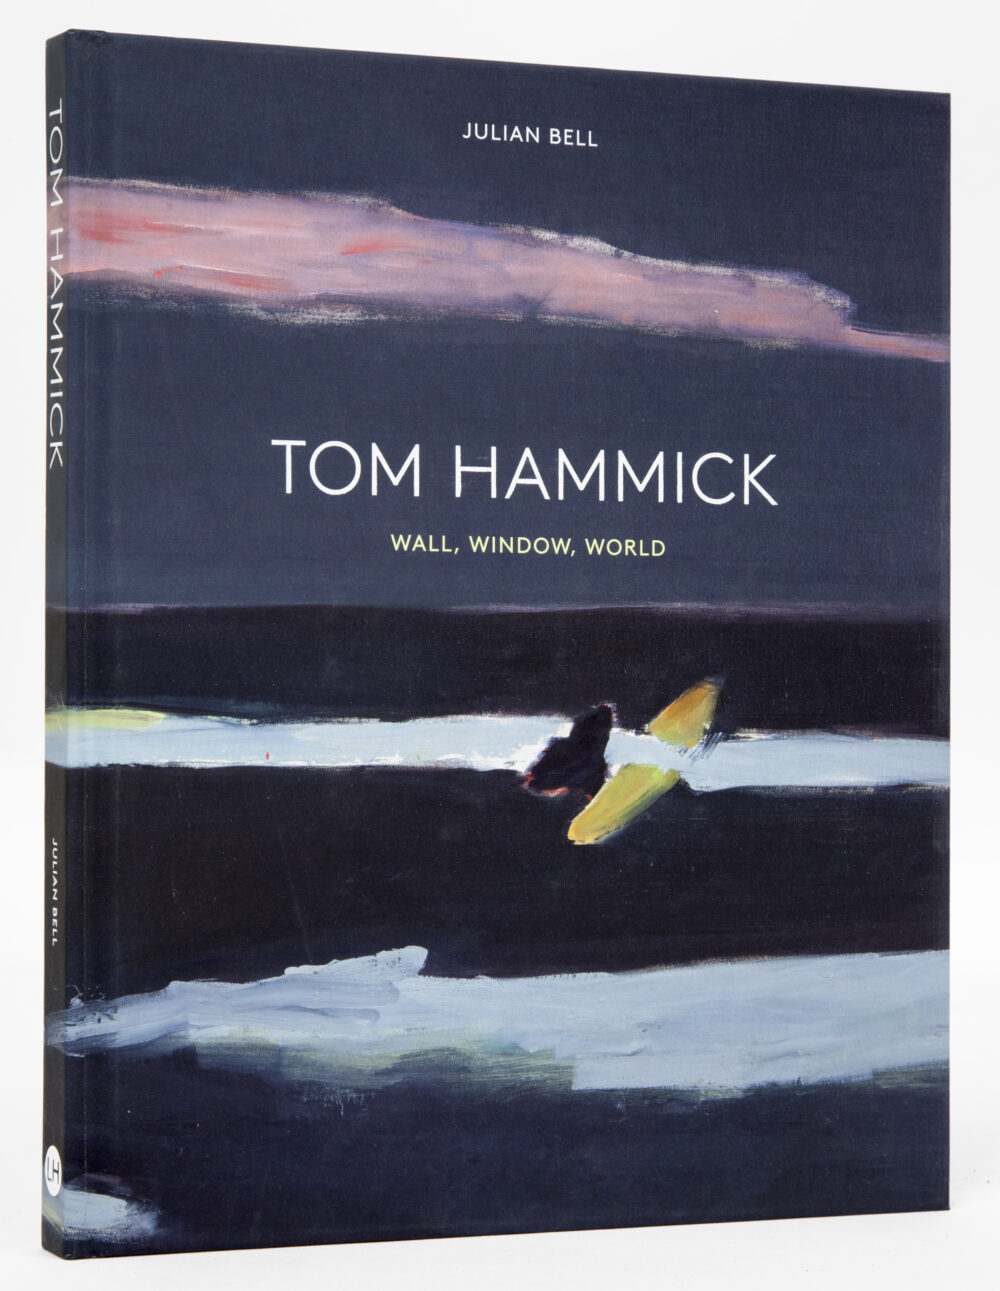 Tom Hammick Private View and Book Launch